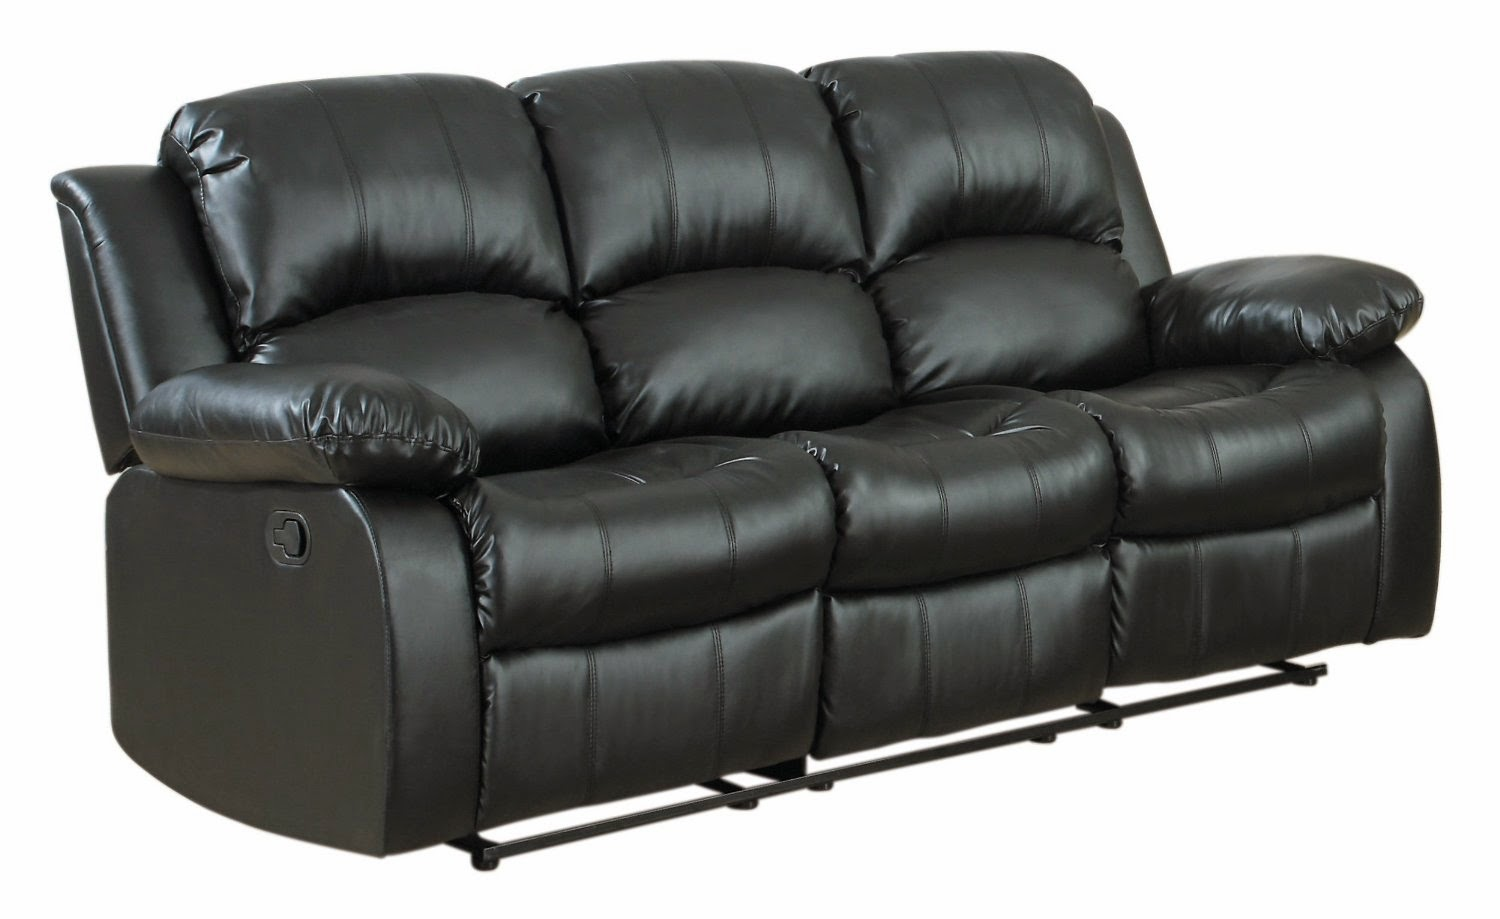 The Best Reclining Sofa Reviews Rotunda Black Faux